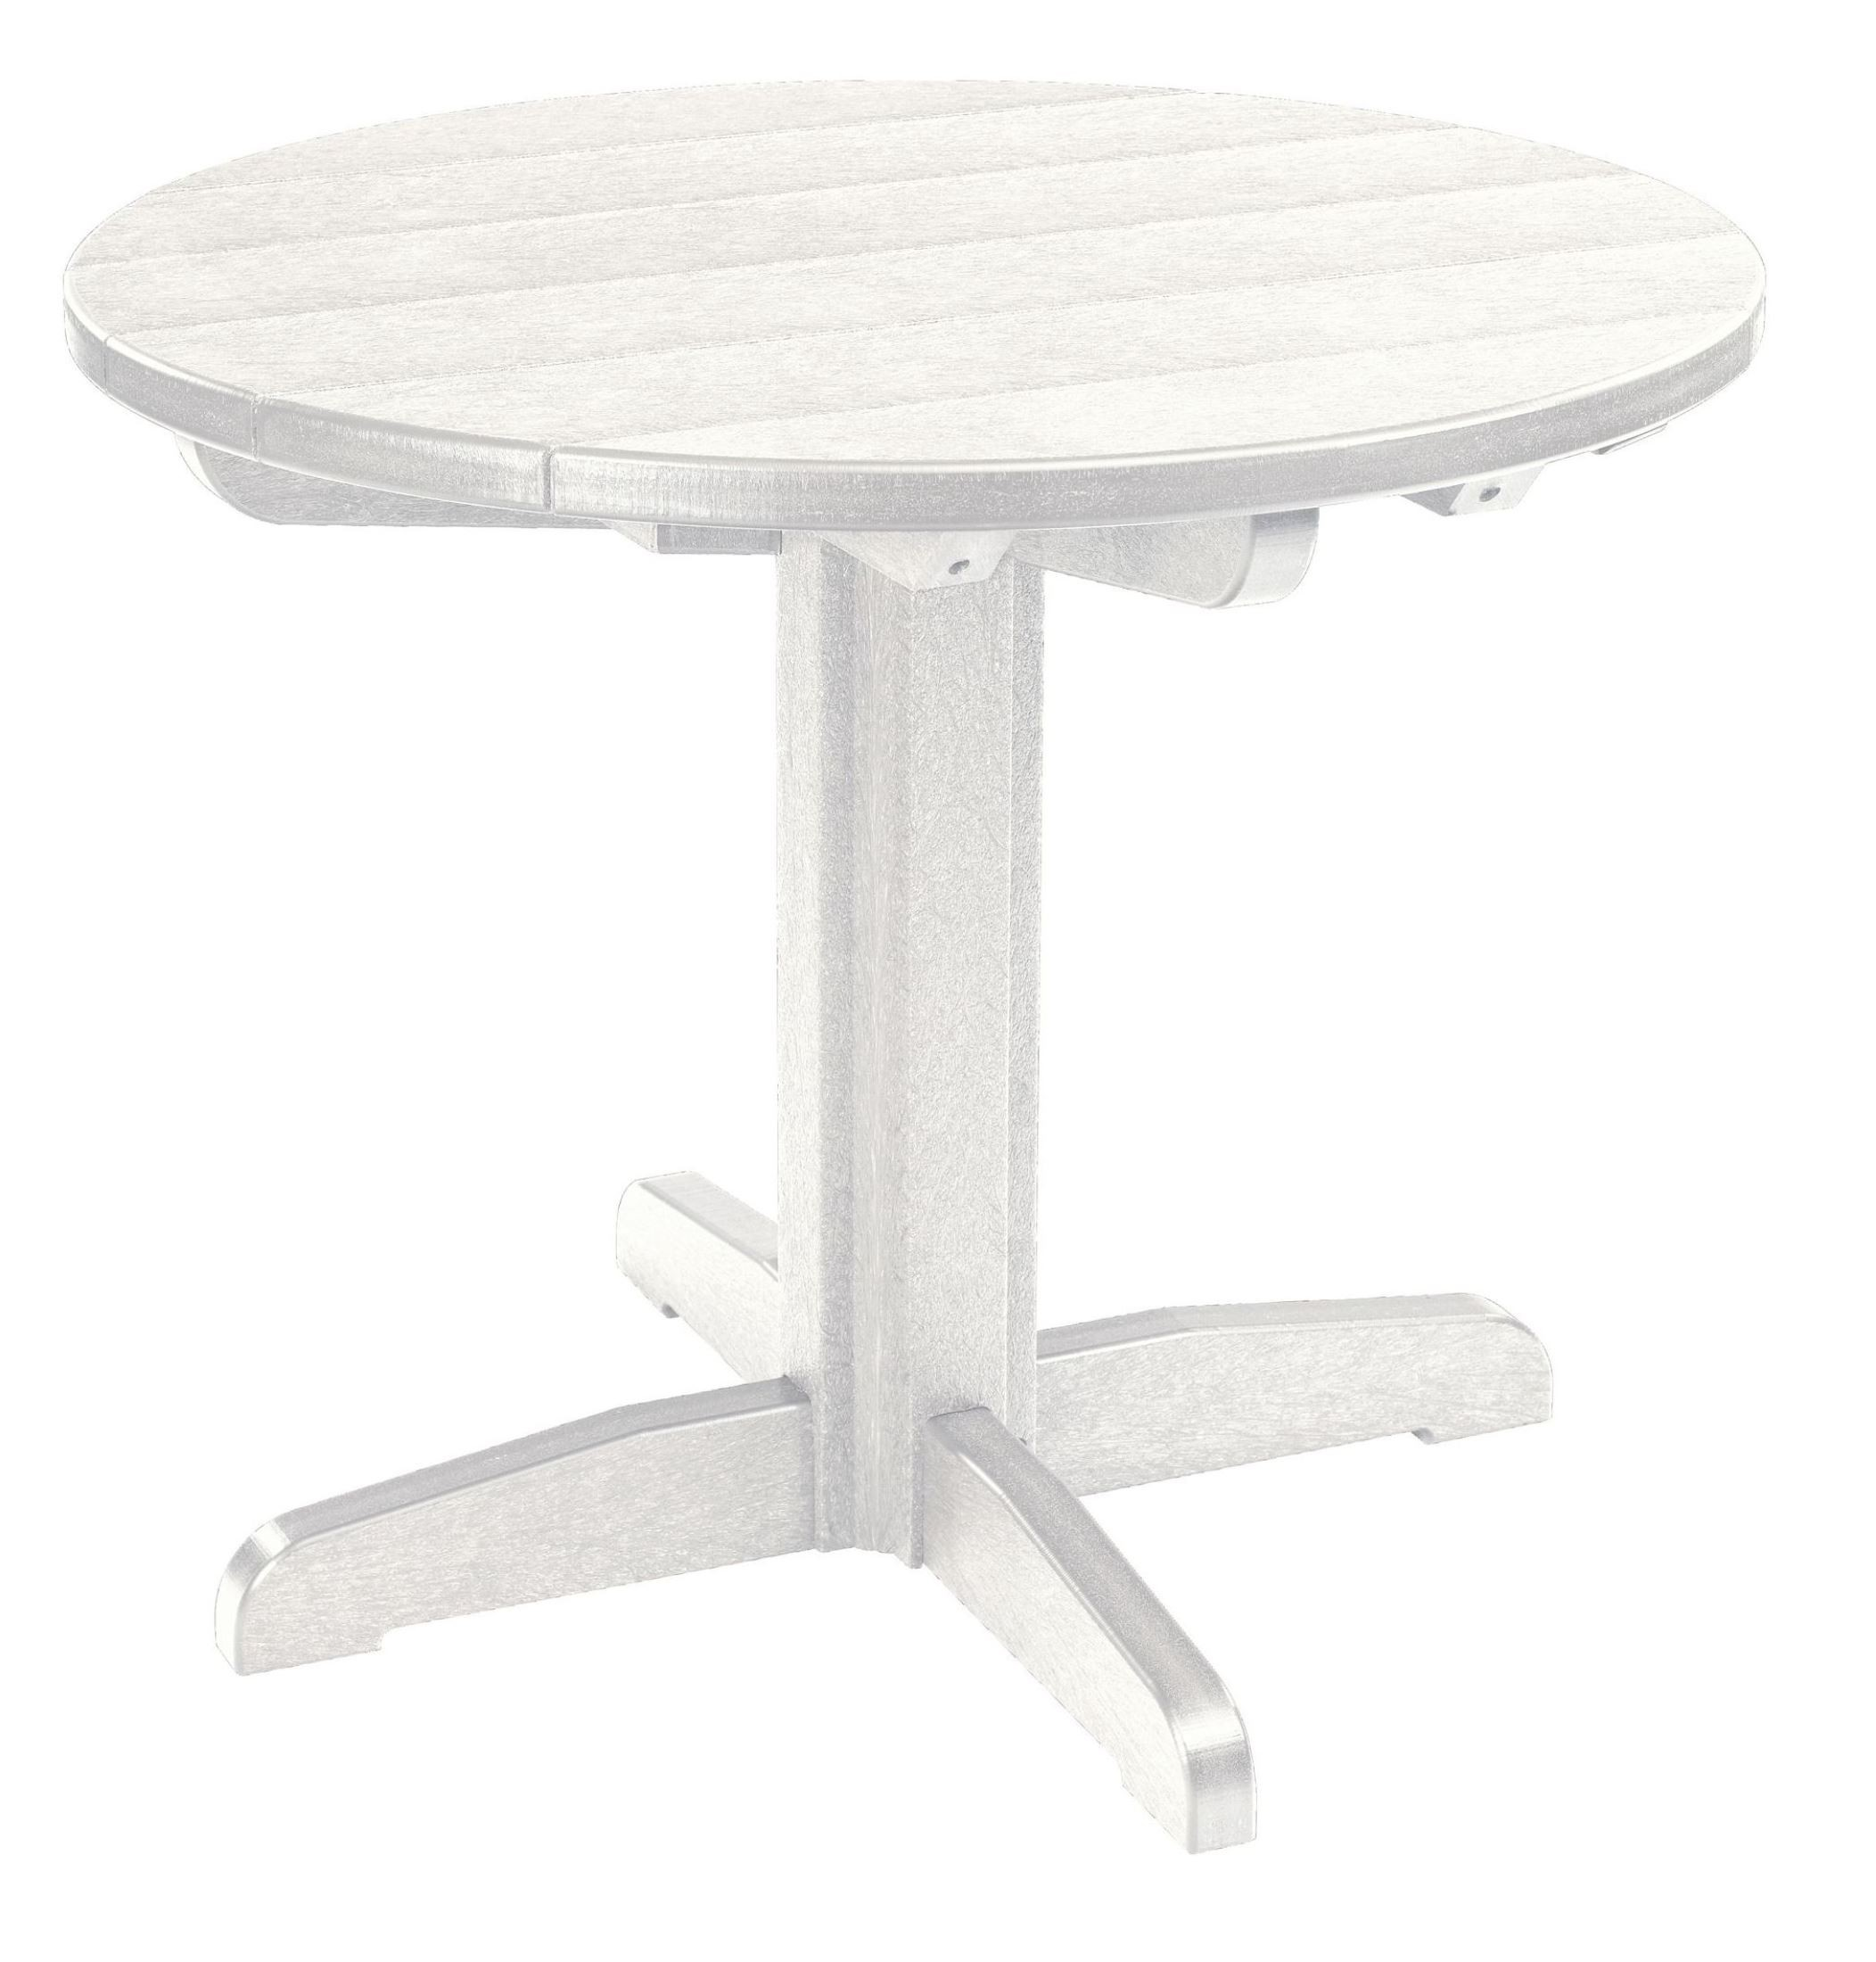 Generations White 32 Quot Round Pedestal Dining Table From Cr